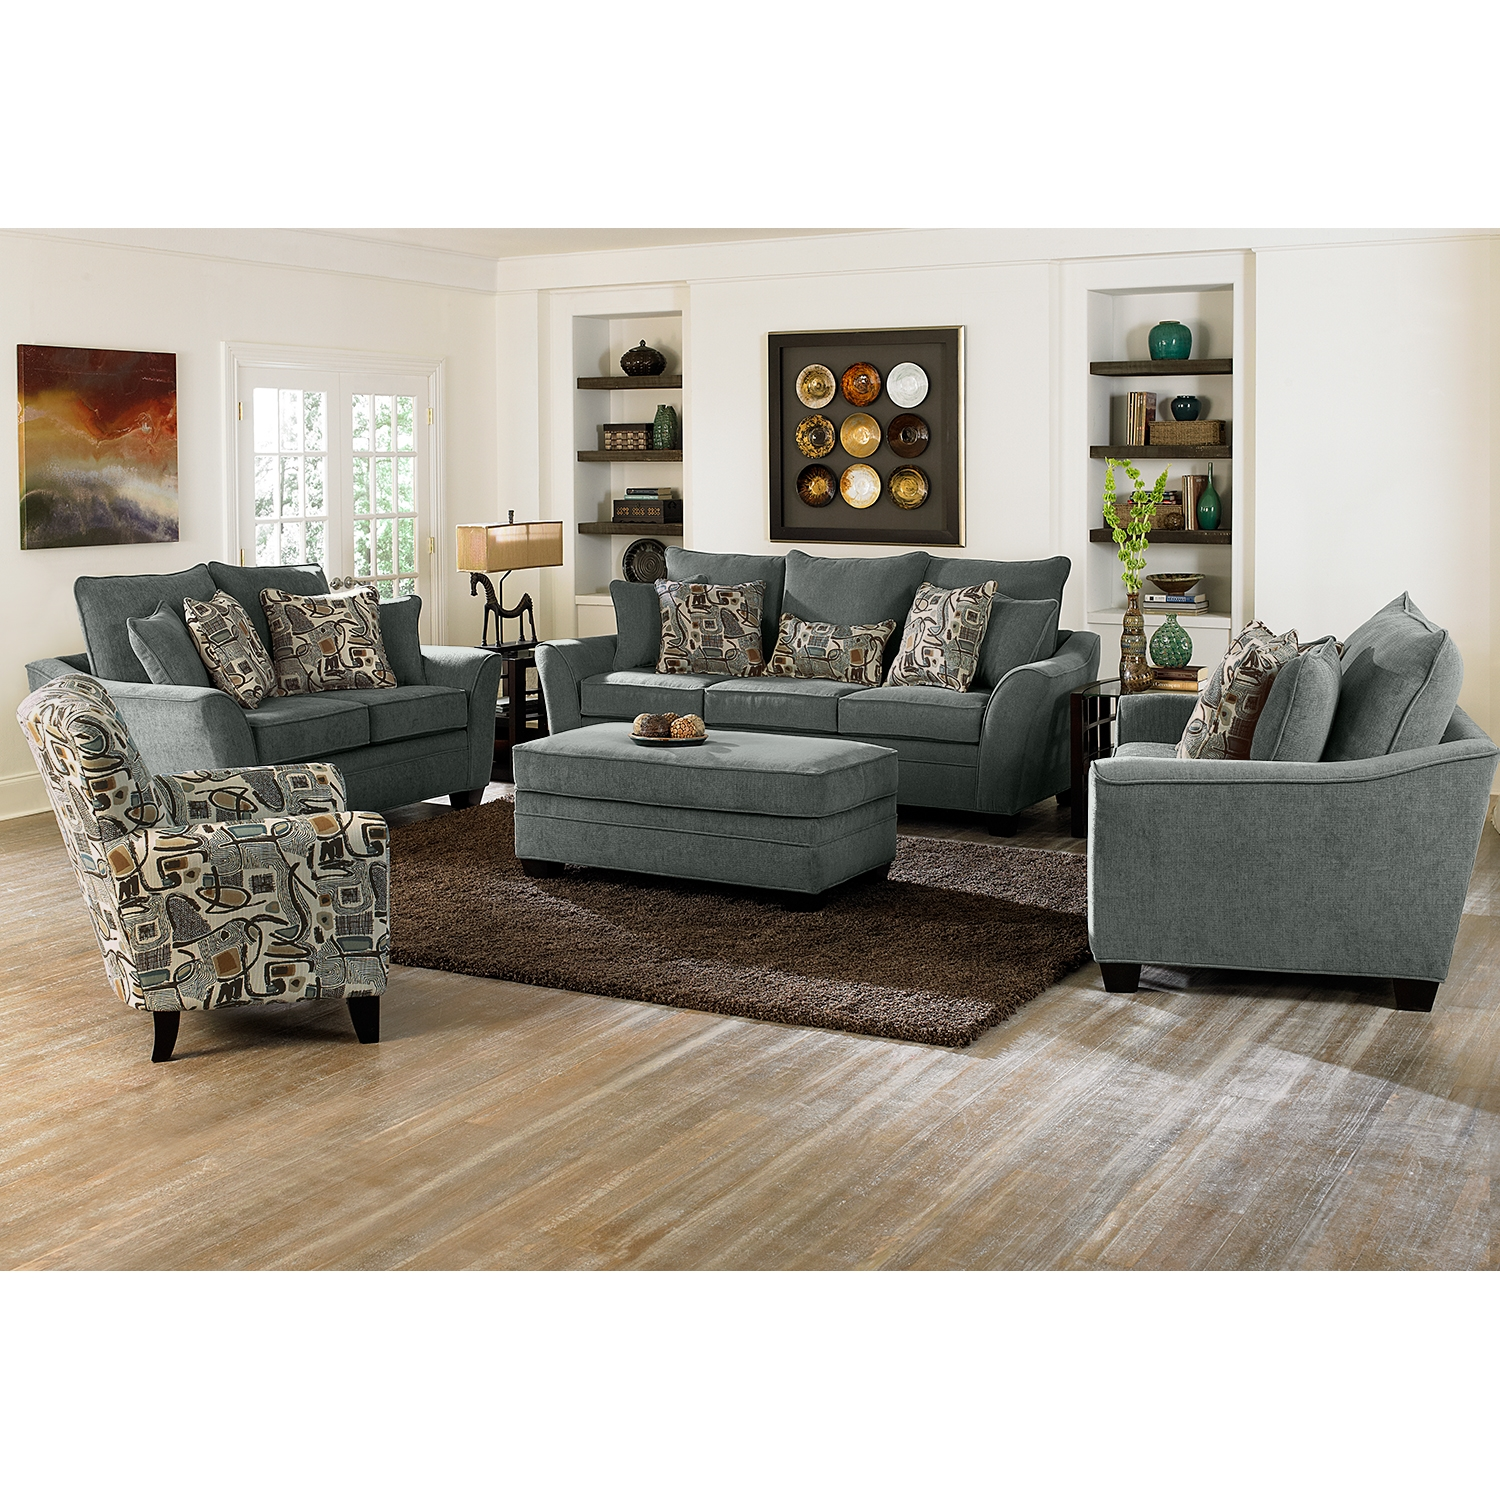 Image Result For Living Room Chairs And Ottomans